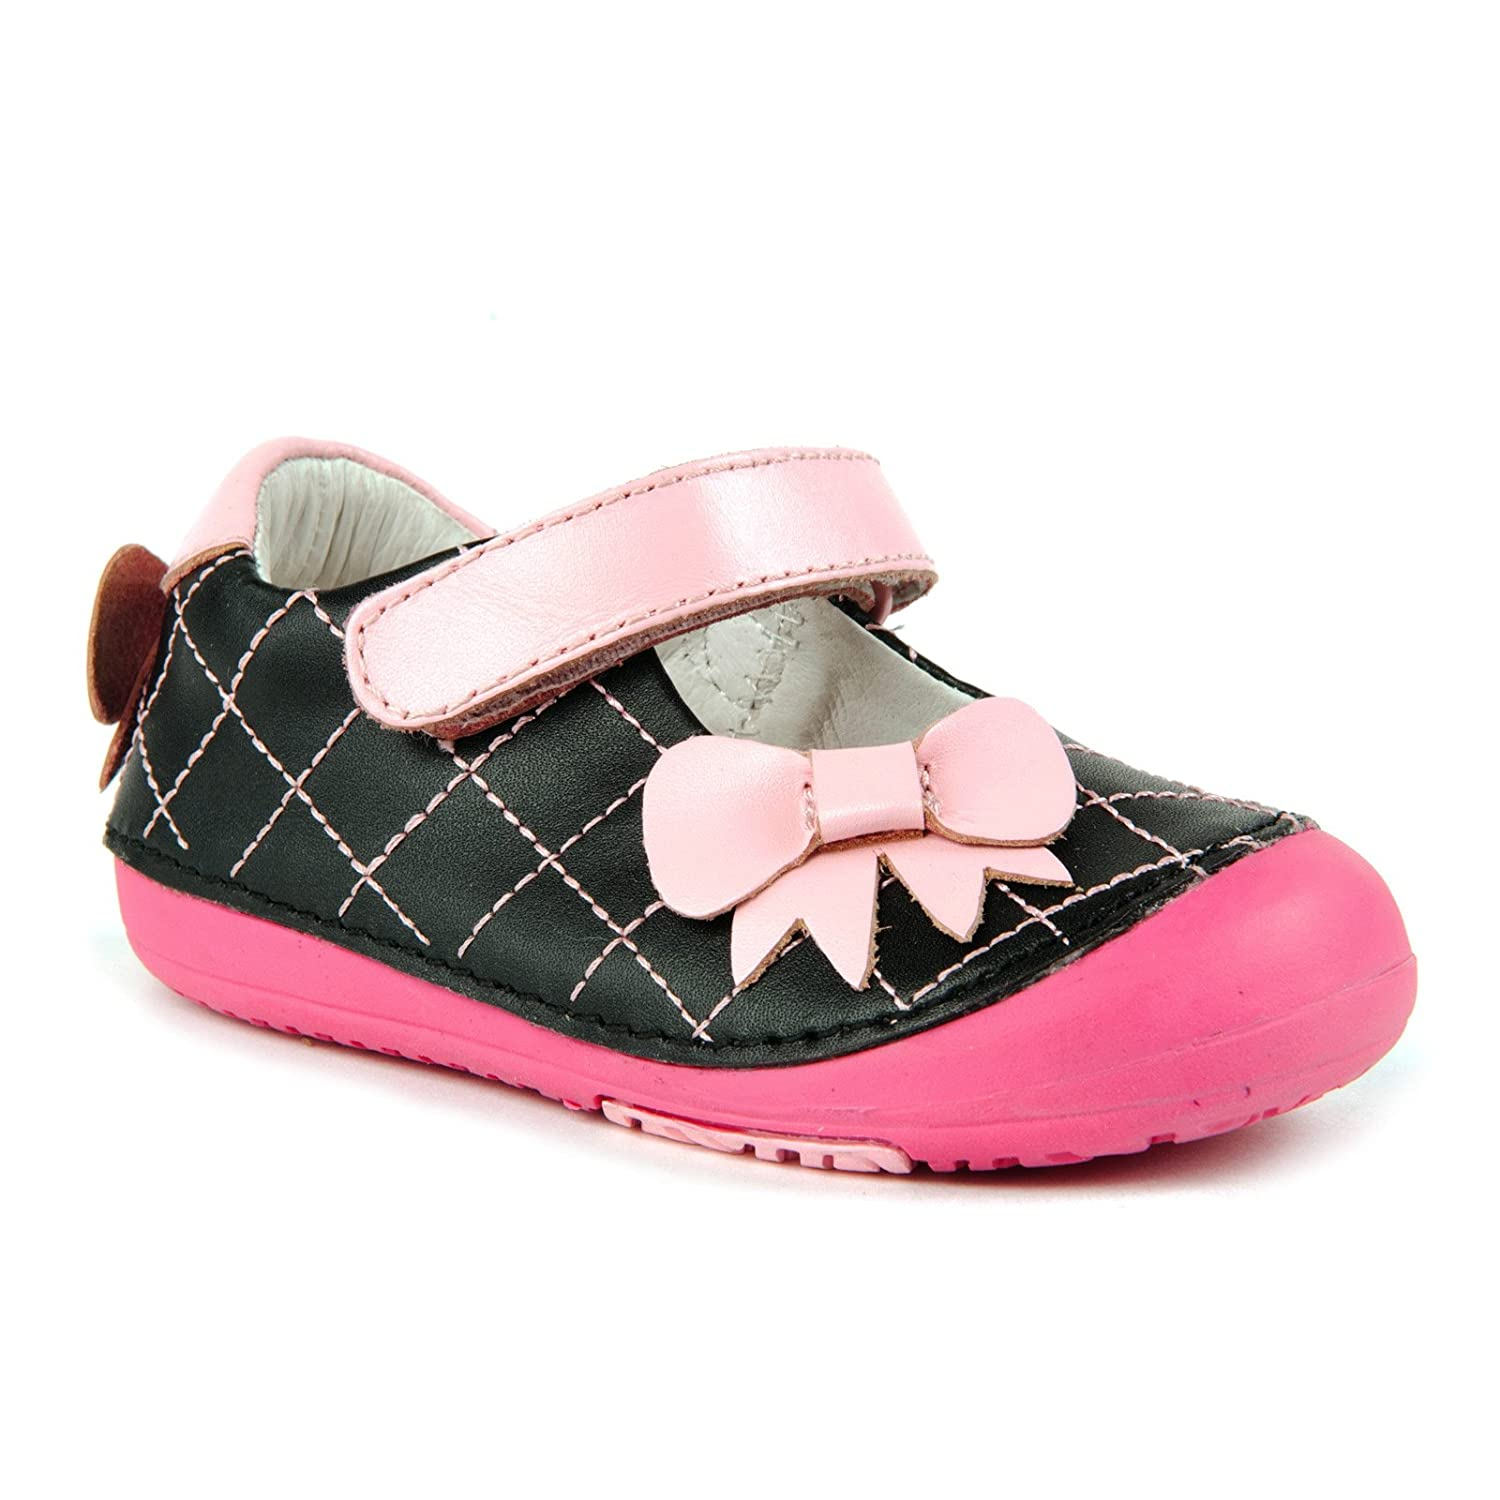 Momo Baby Girls First Walker/Toddler Quilted Bow Mary Jane Leather Shoes